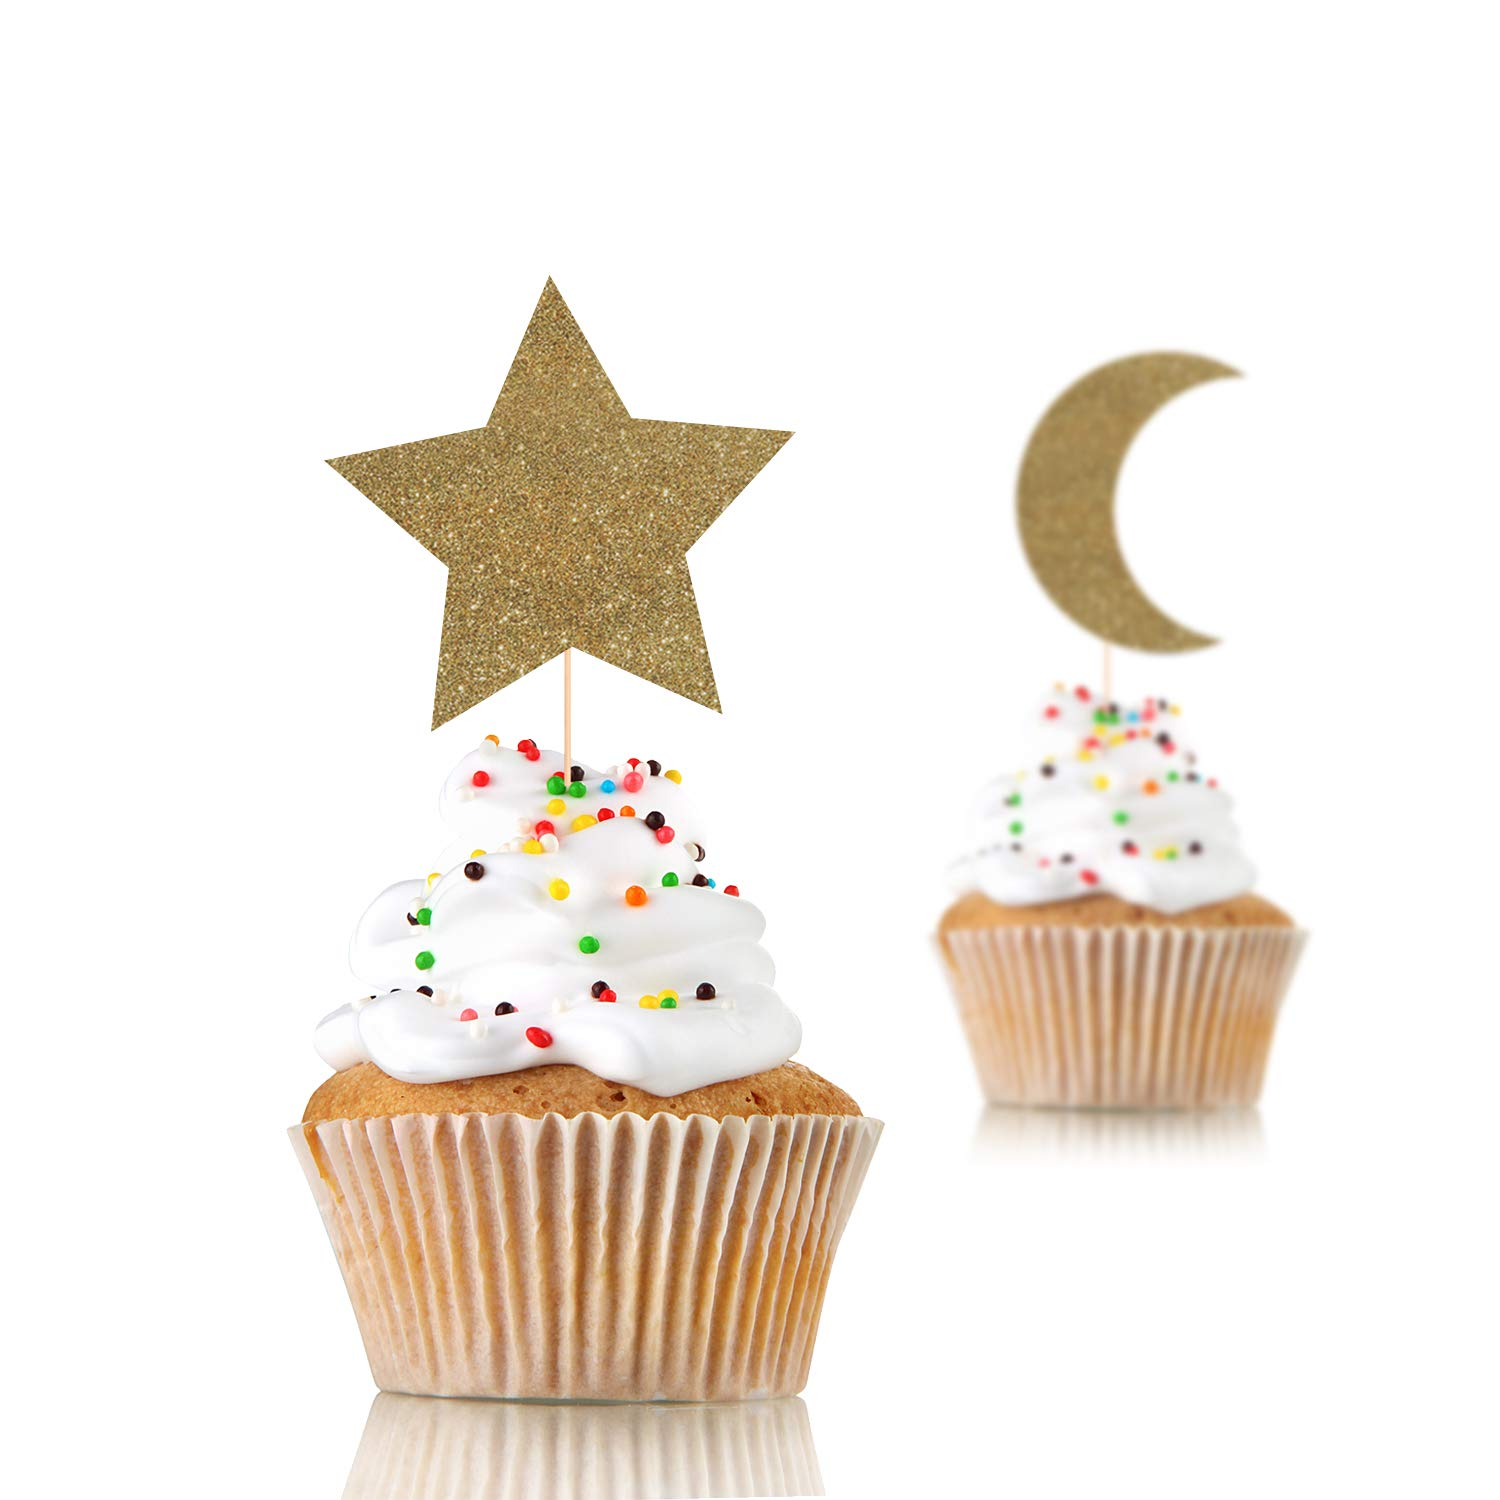 12 X Twinkle Twinkle Little Stern Cupcake Topper, Mond und Stern Cupcake, Stern Theme, Kunst Shower Party, Stern Party Concept